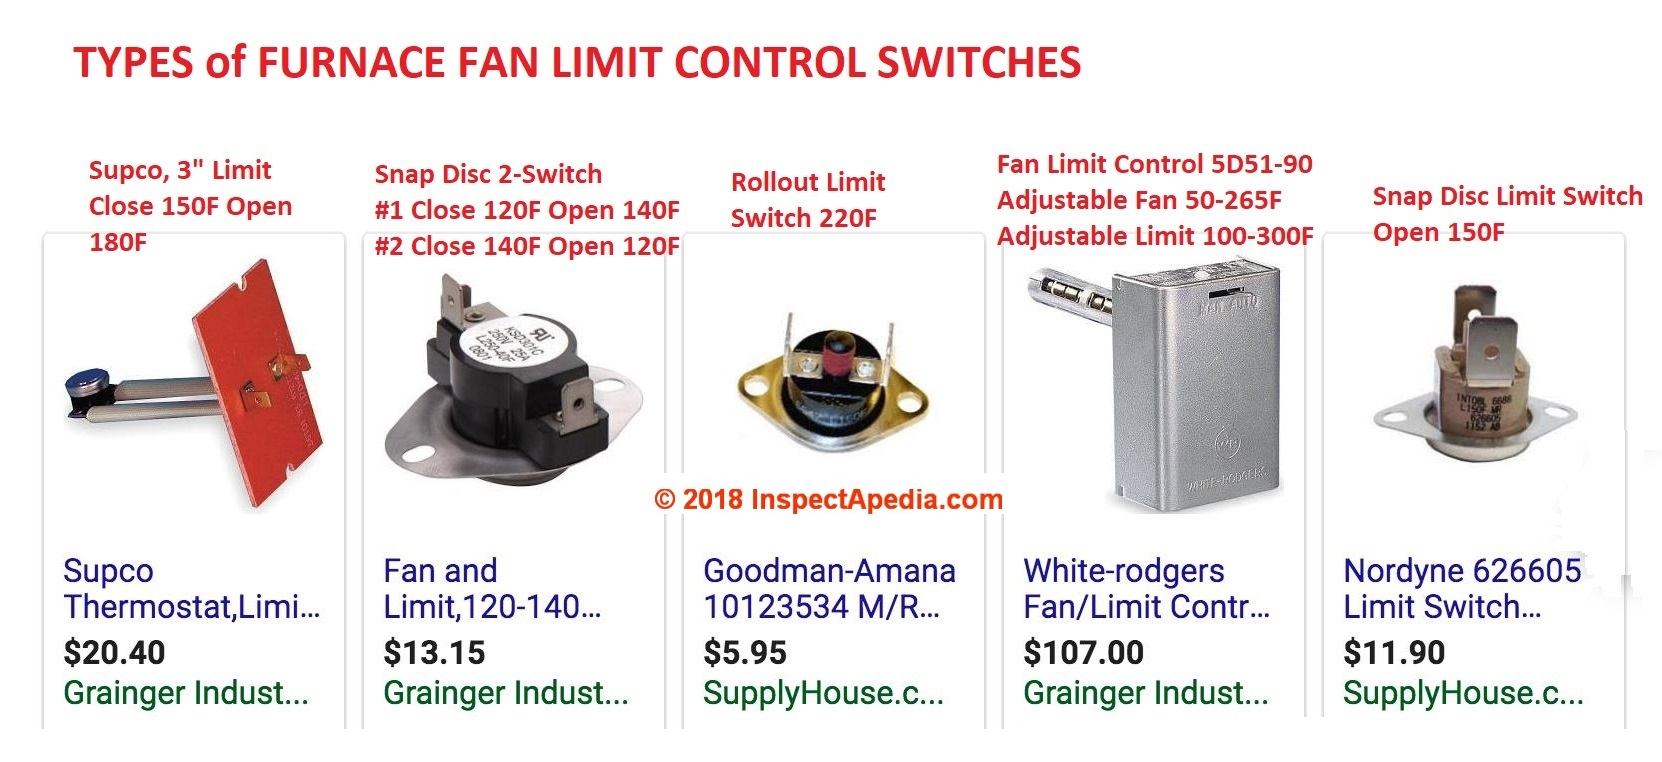 Types of furnace fan & limit control switches (C) InspectApedia.com